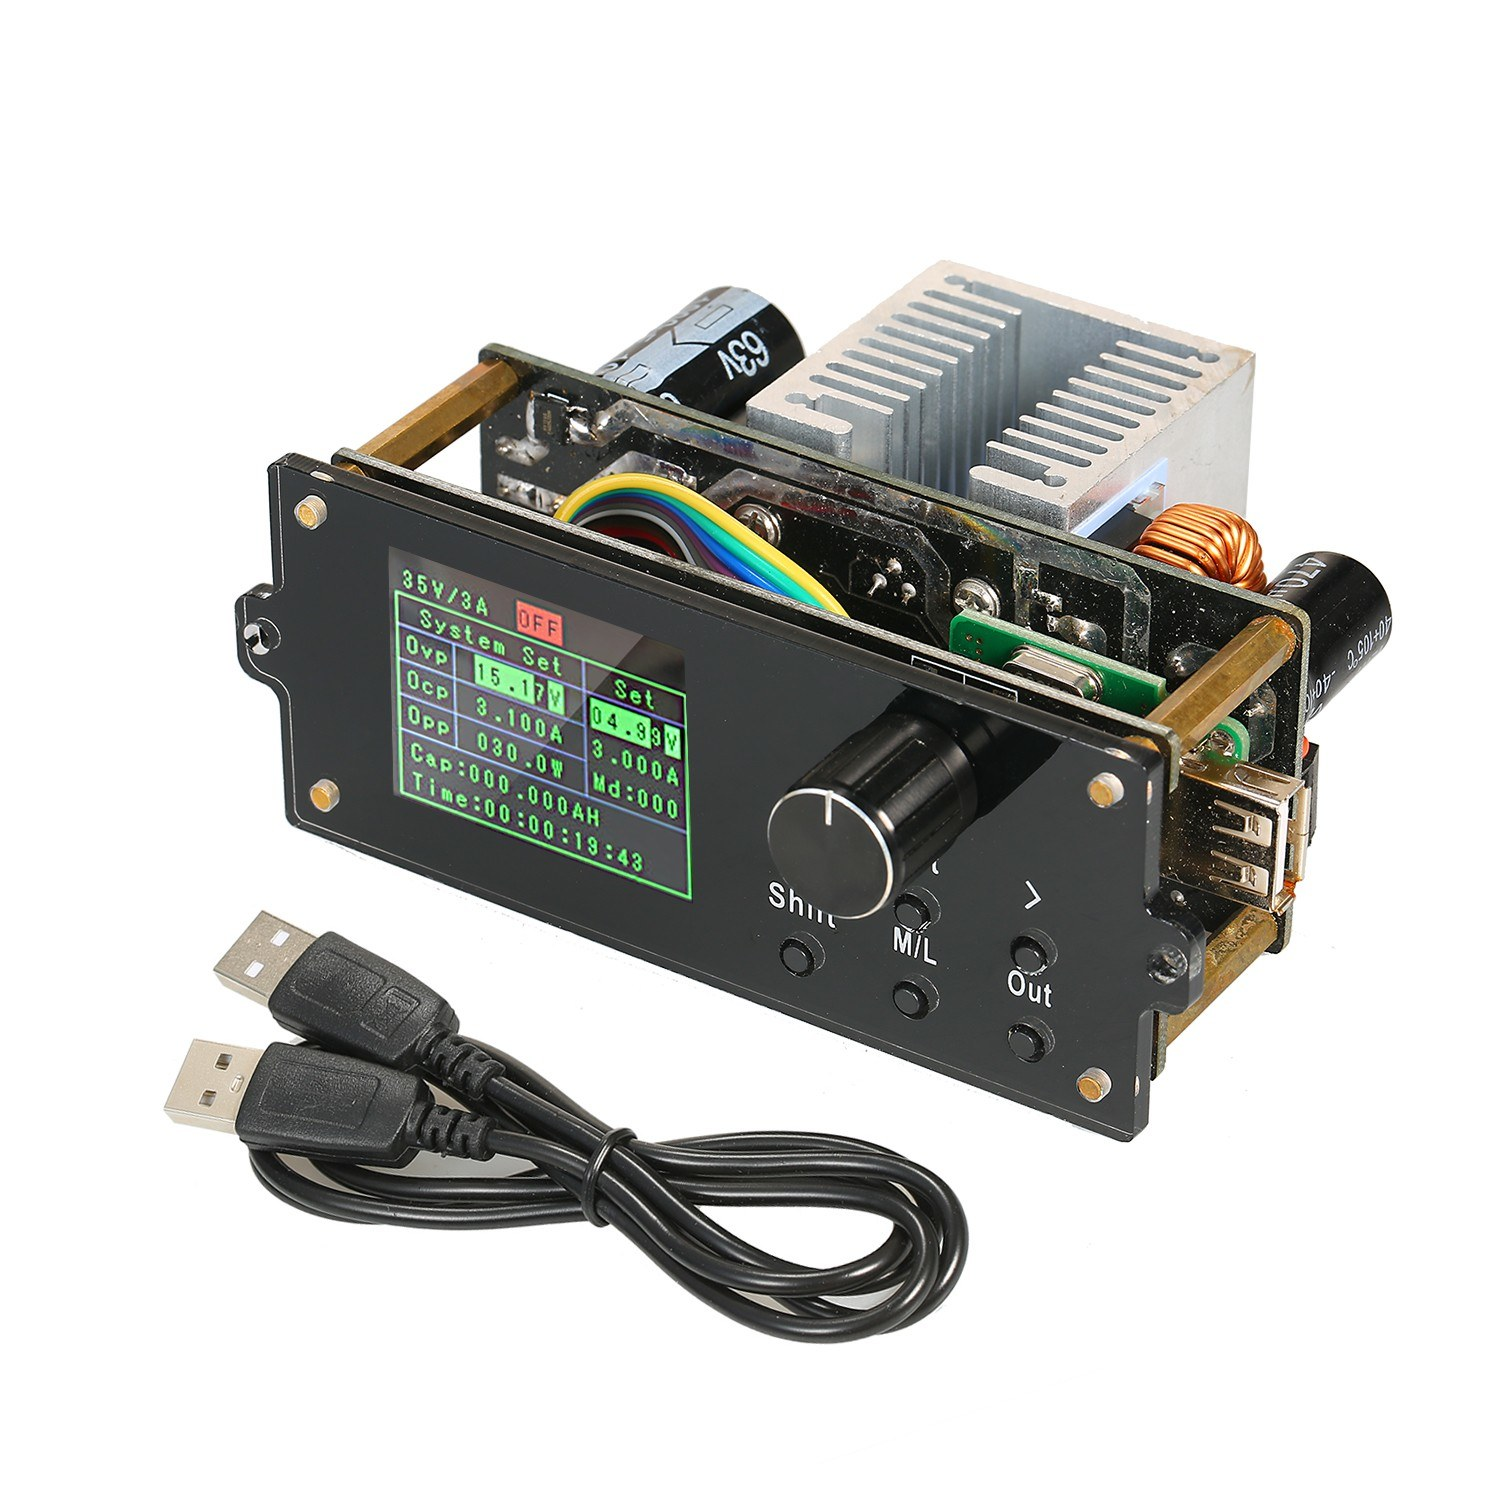 DPX Series 1.8-inch Color Screen Display CNC Adjustable Constant Voltmeter Power Supply Step-down Module Integrated Voltage Ammeter 0-60.00V/0-5.000A  DPX6005S